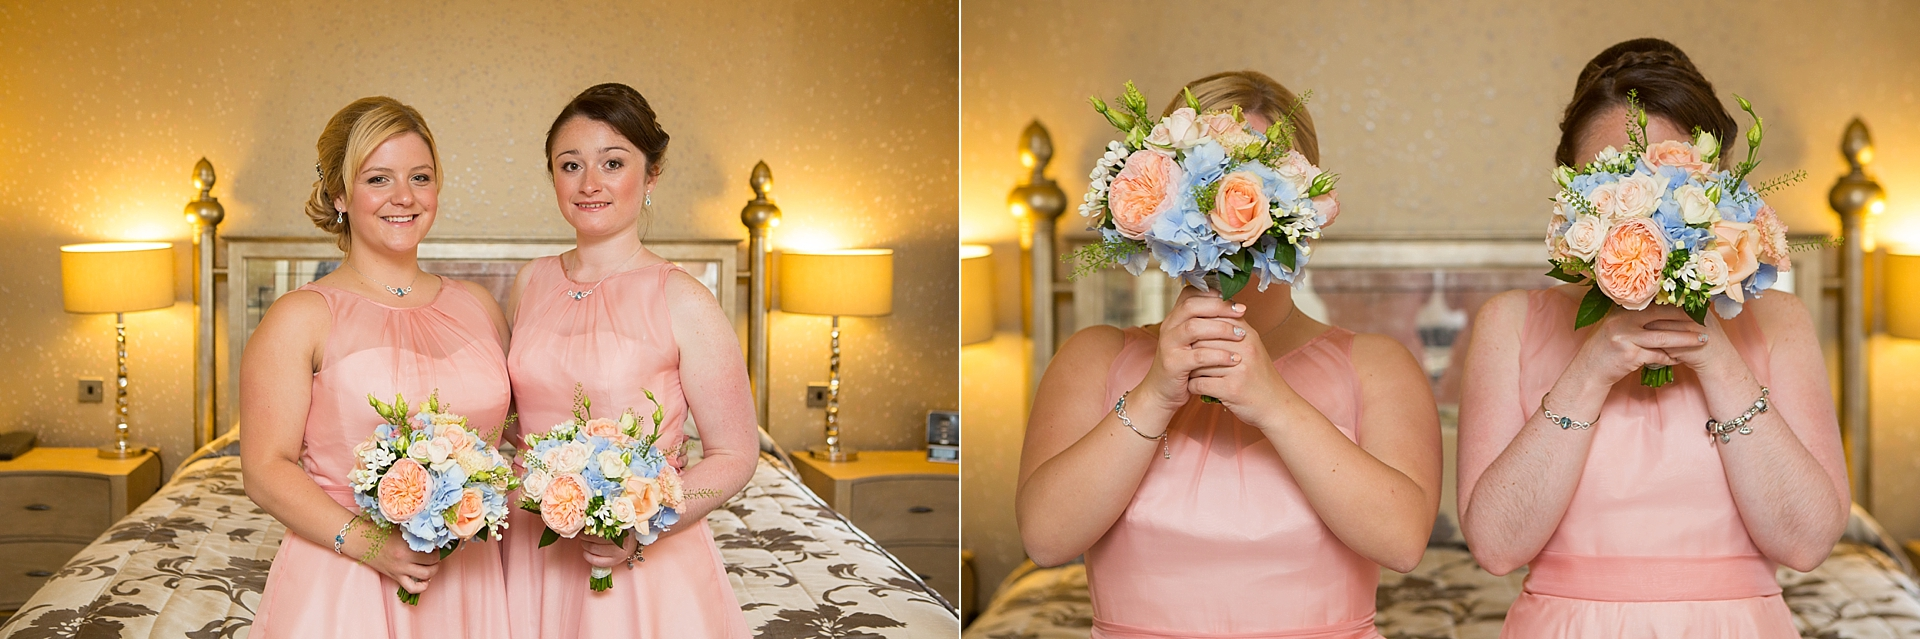 wedding photographer stoke on trent staffordshire manor house alsager 6.jpg